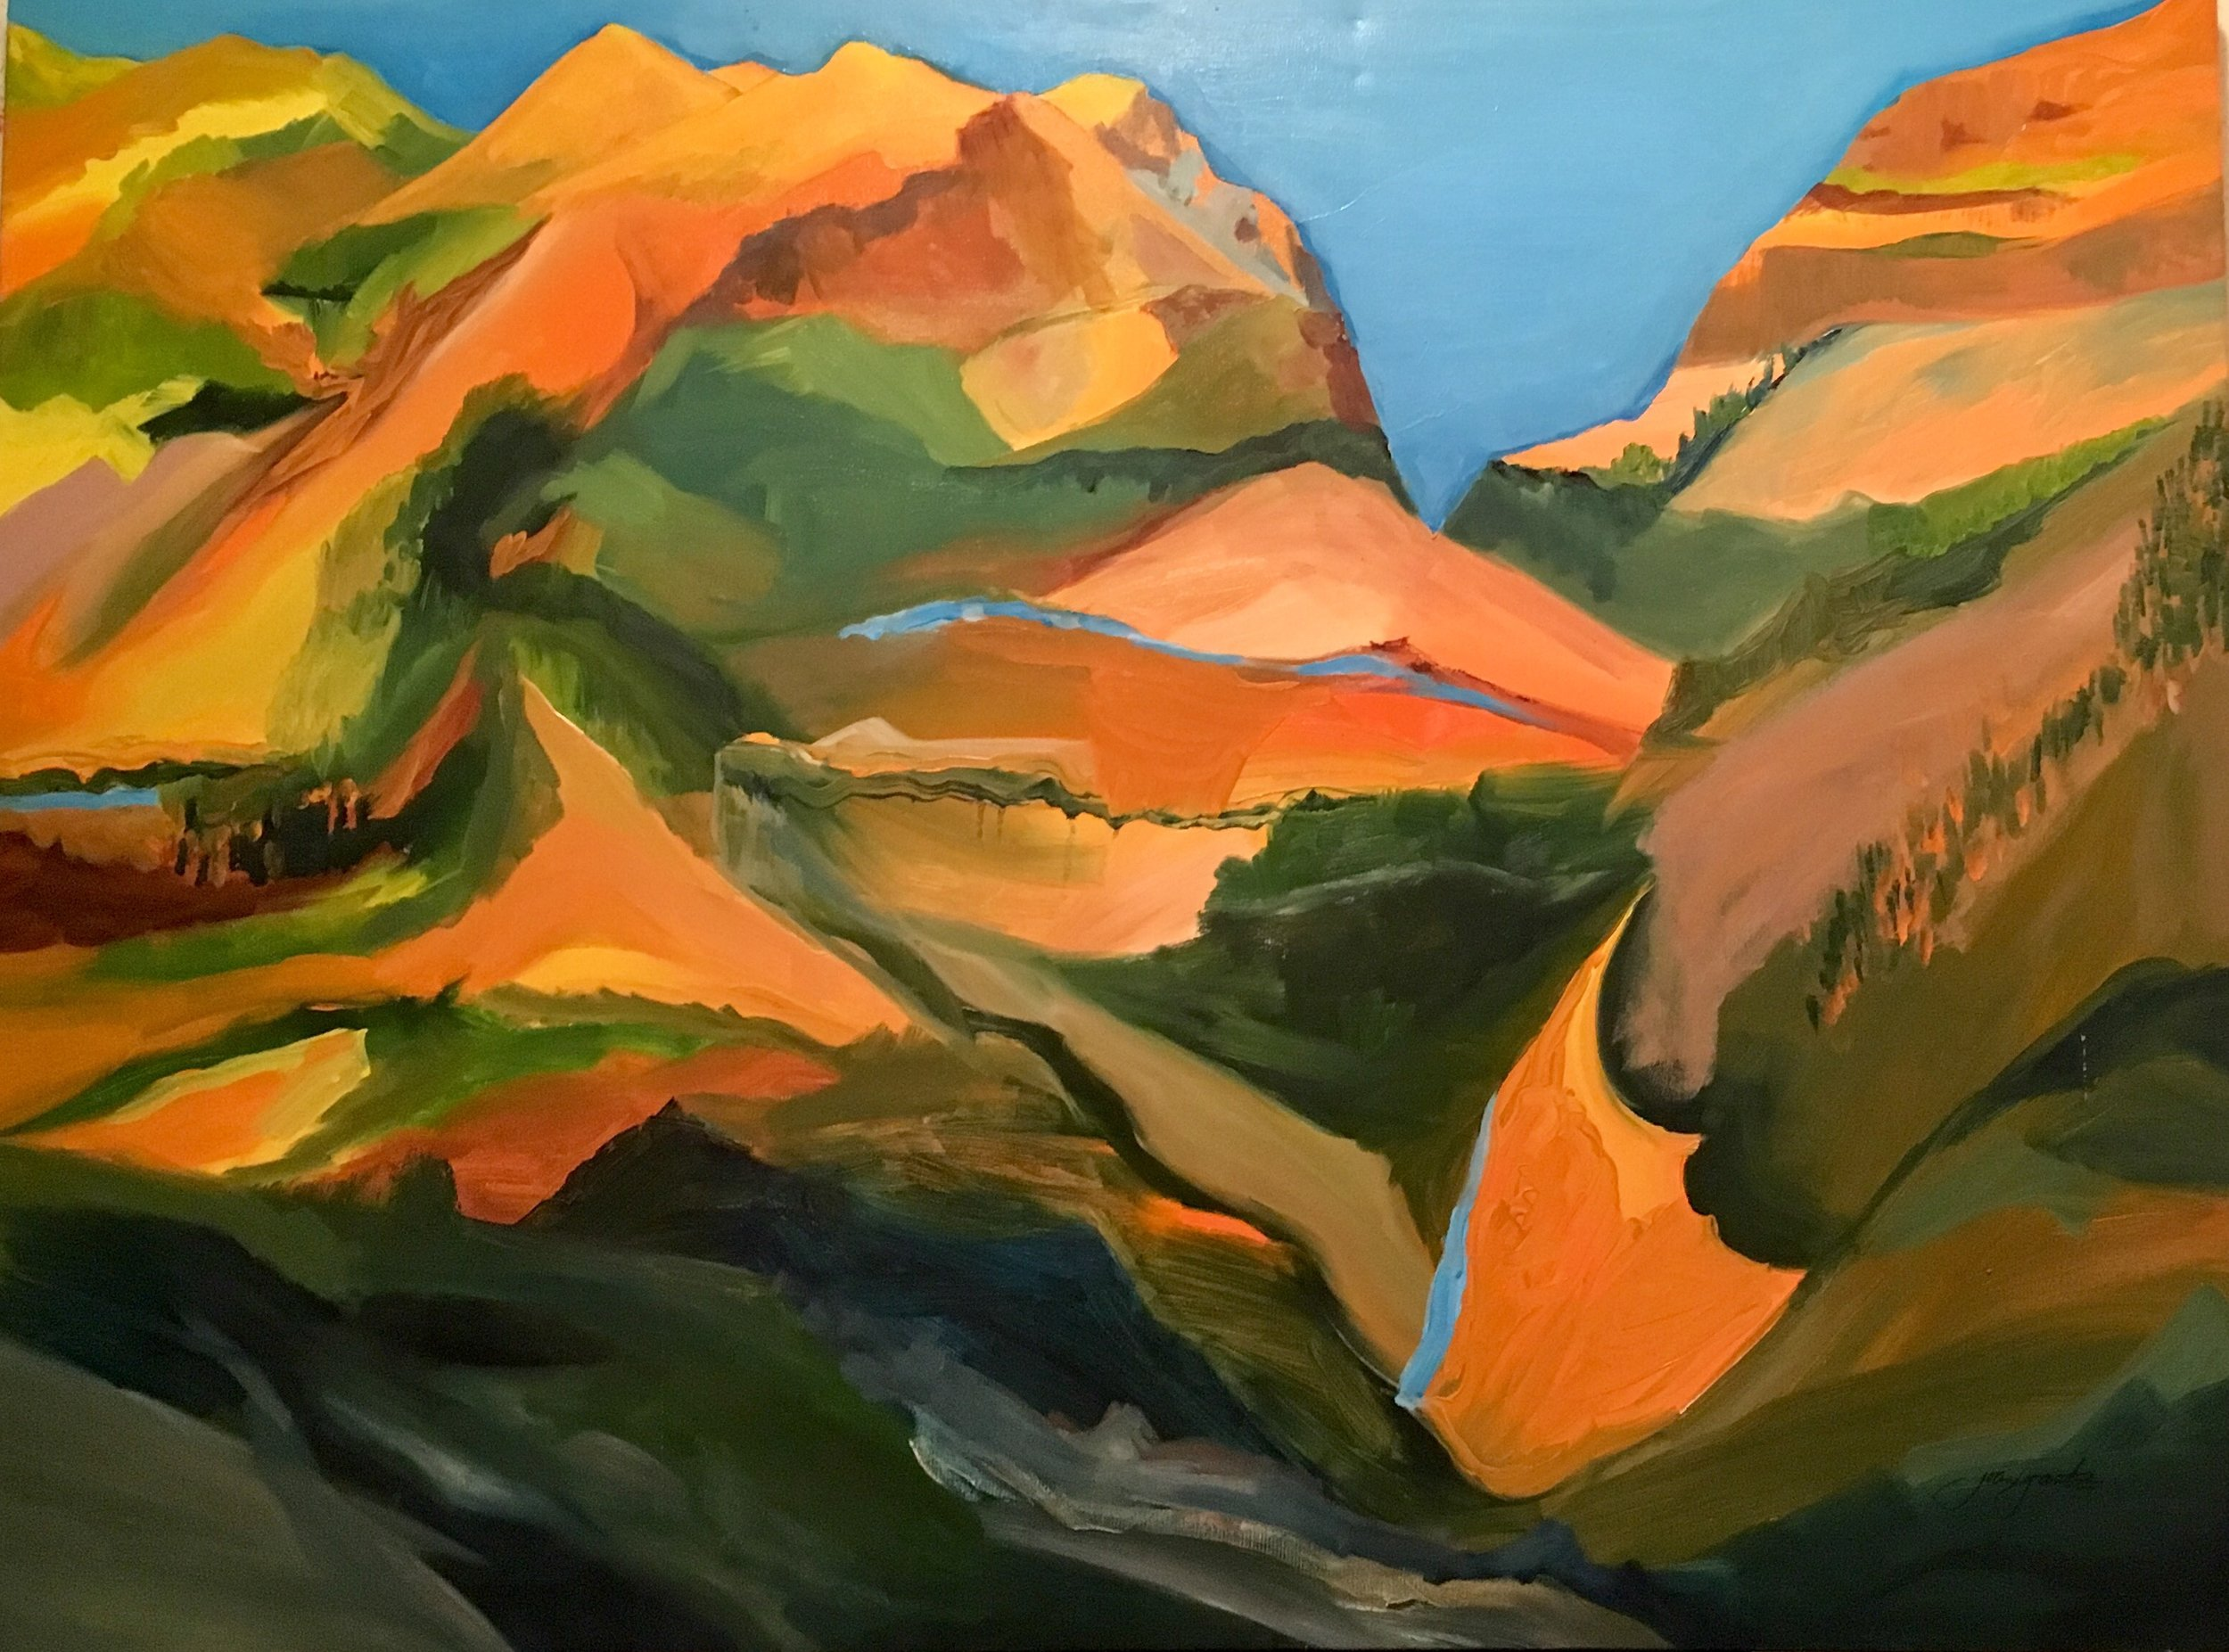 """ San Jose Range"" oil on canvas 36"" x 48"" Oil on gallery wrapped canvas $800"